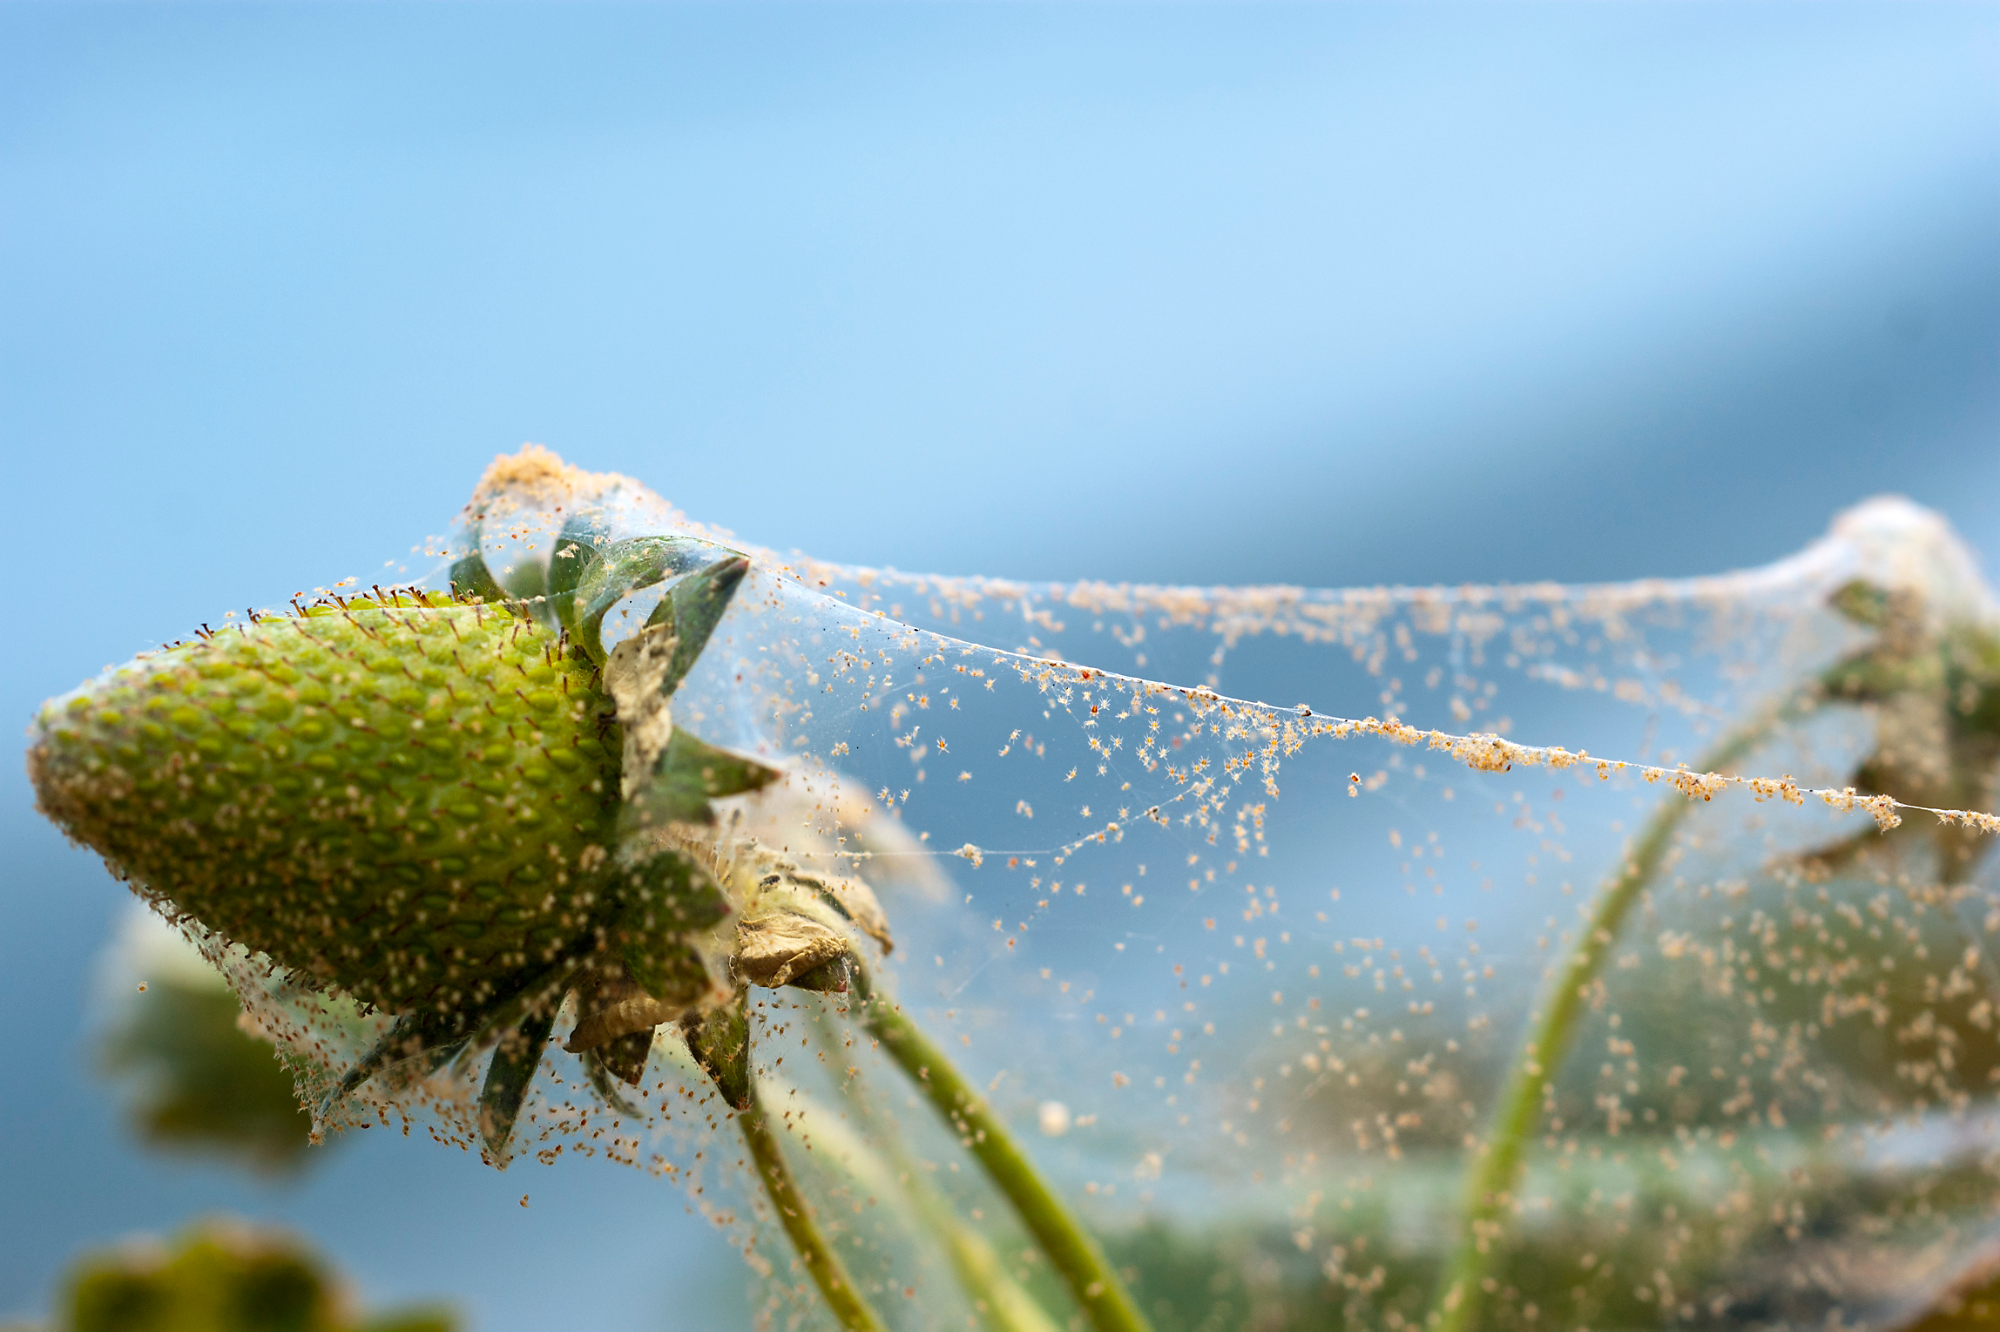 Spider mite web on plant